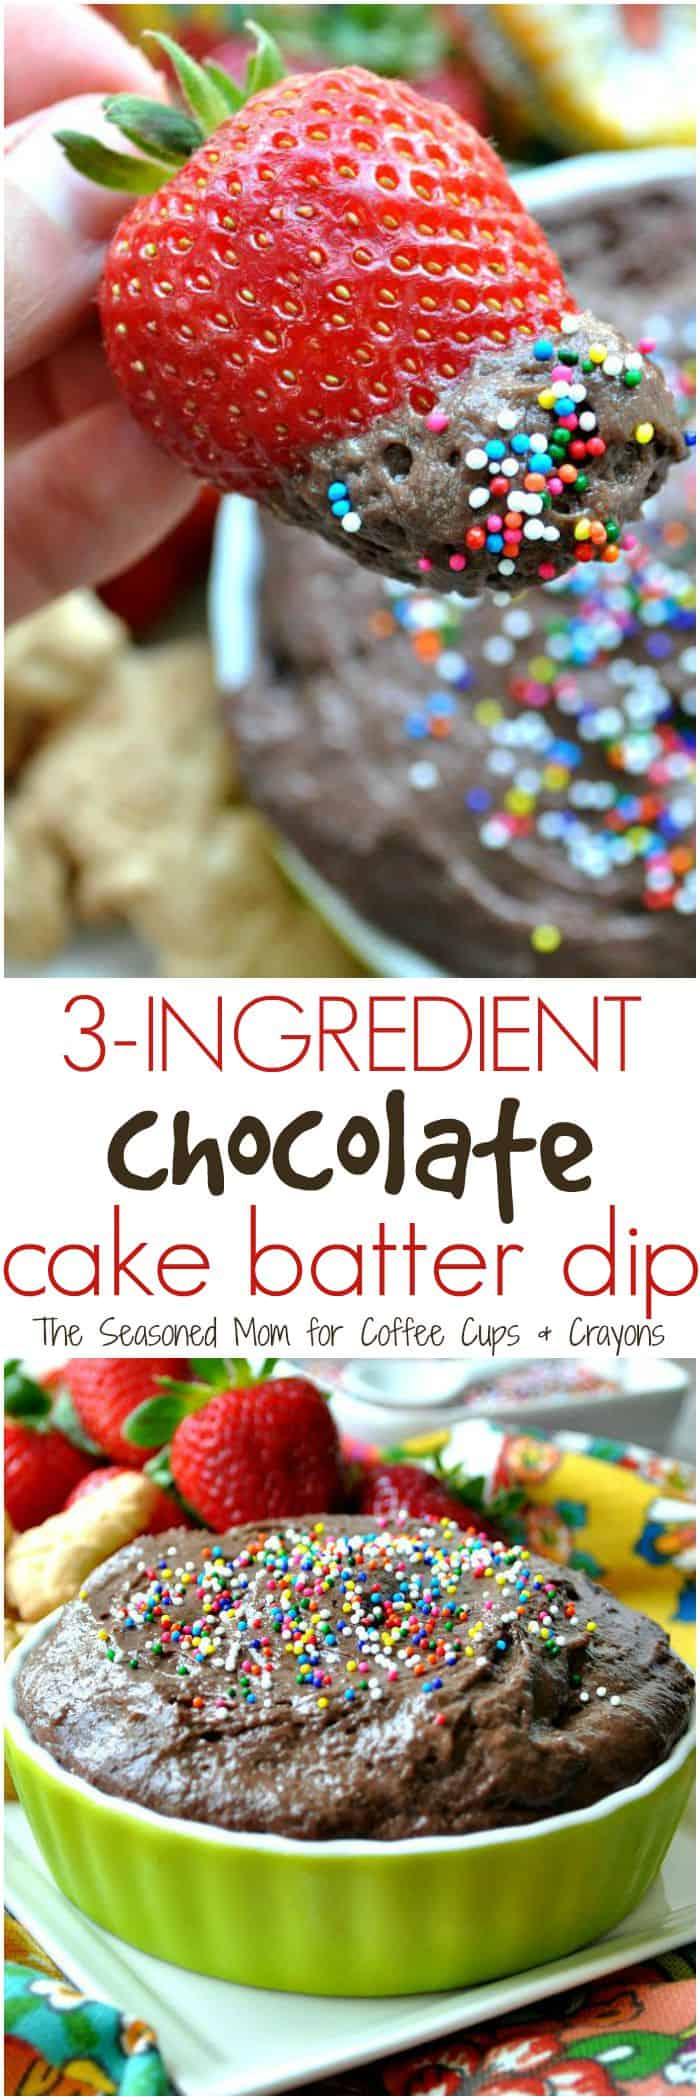 3 Ingredient Chocolate Cake Batter Dip